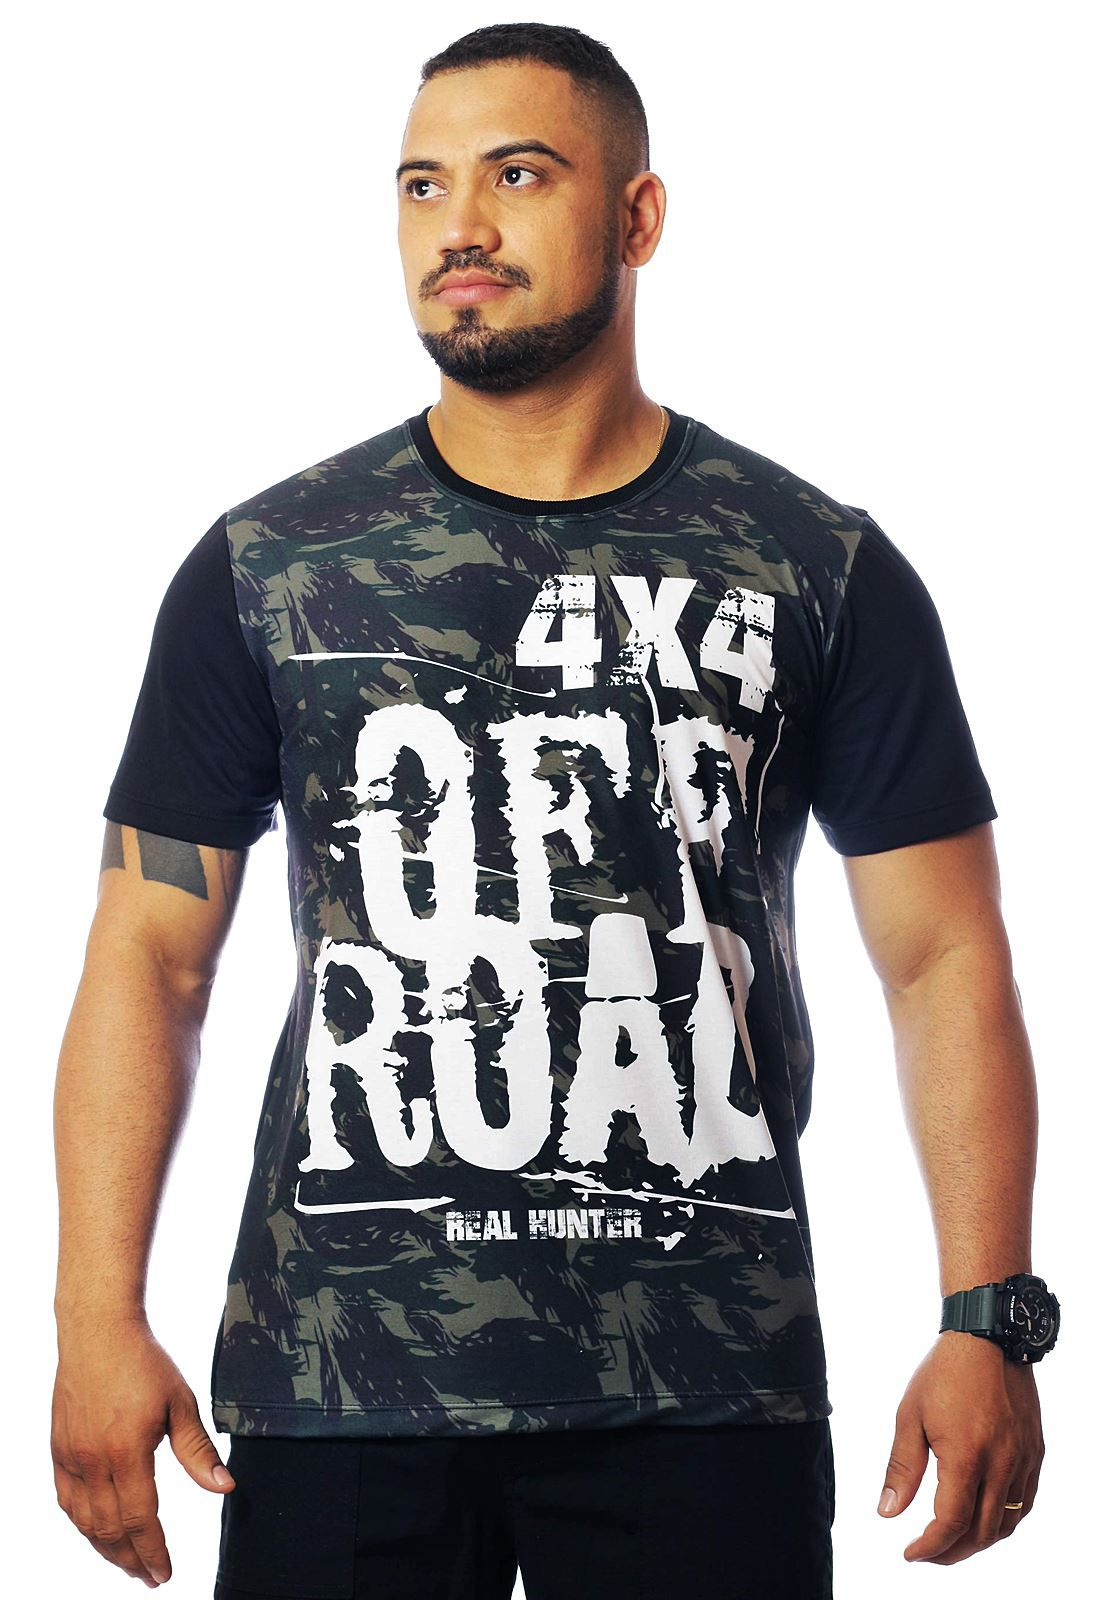 CAMISA OFF ROAD 4X4 MANGA CURTA MASCULINA  - REAL HUNTER OUTDOORS